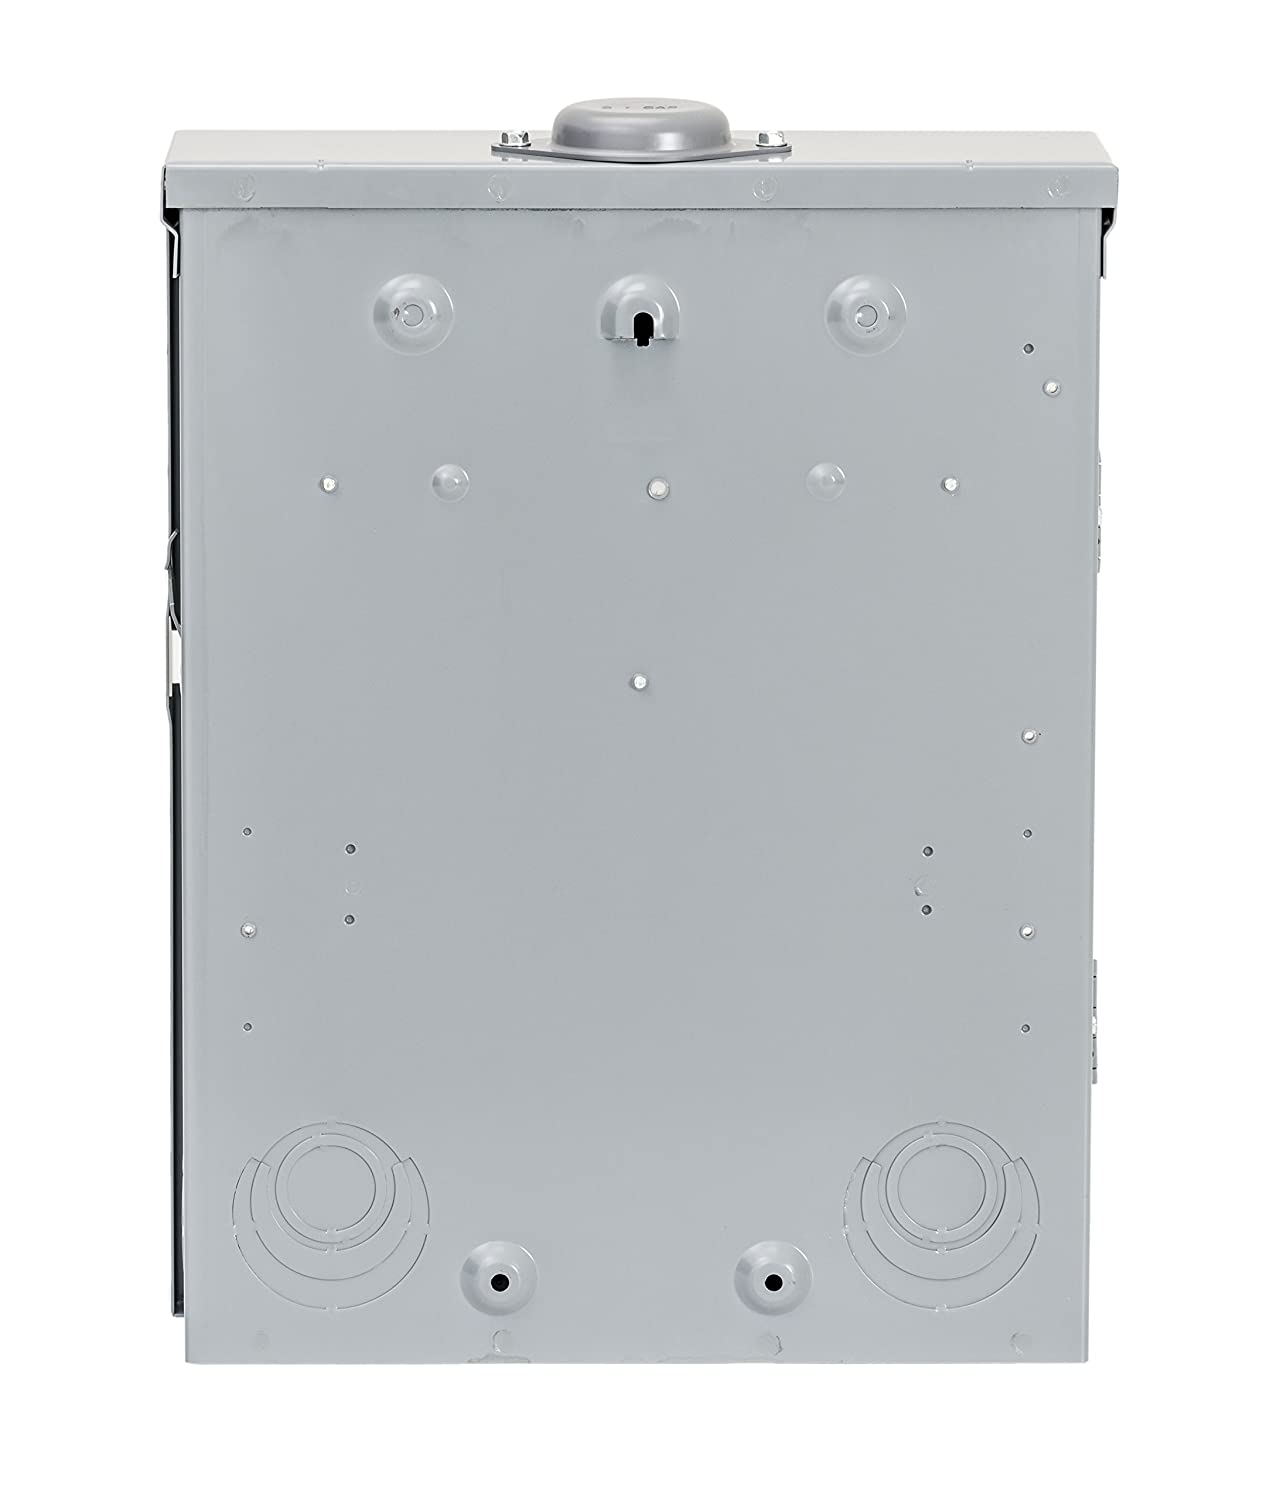 , Plug-on Neutral Ready Square D by Schneider Electric HOM816M100PRB Homeline 100 Amp 8-Space 16-Circuit Outdoor Main Breaker Load Center